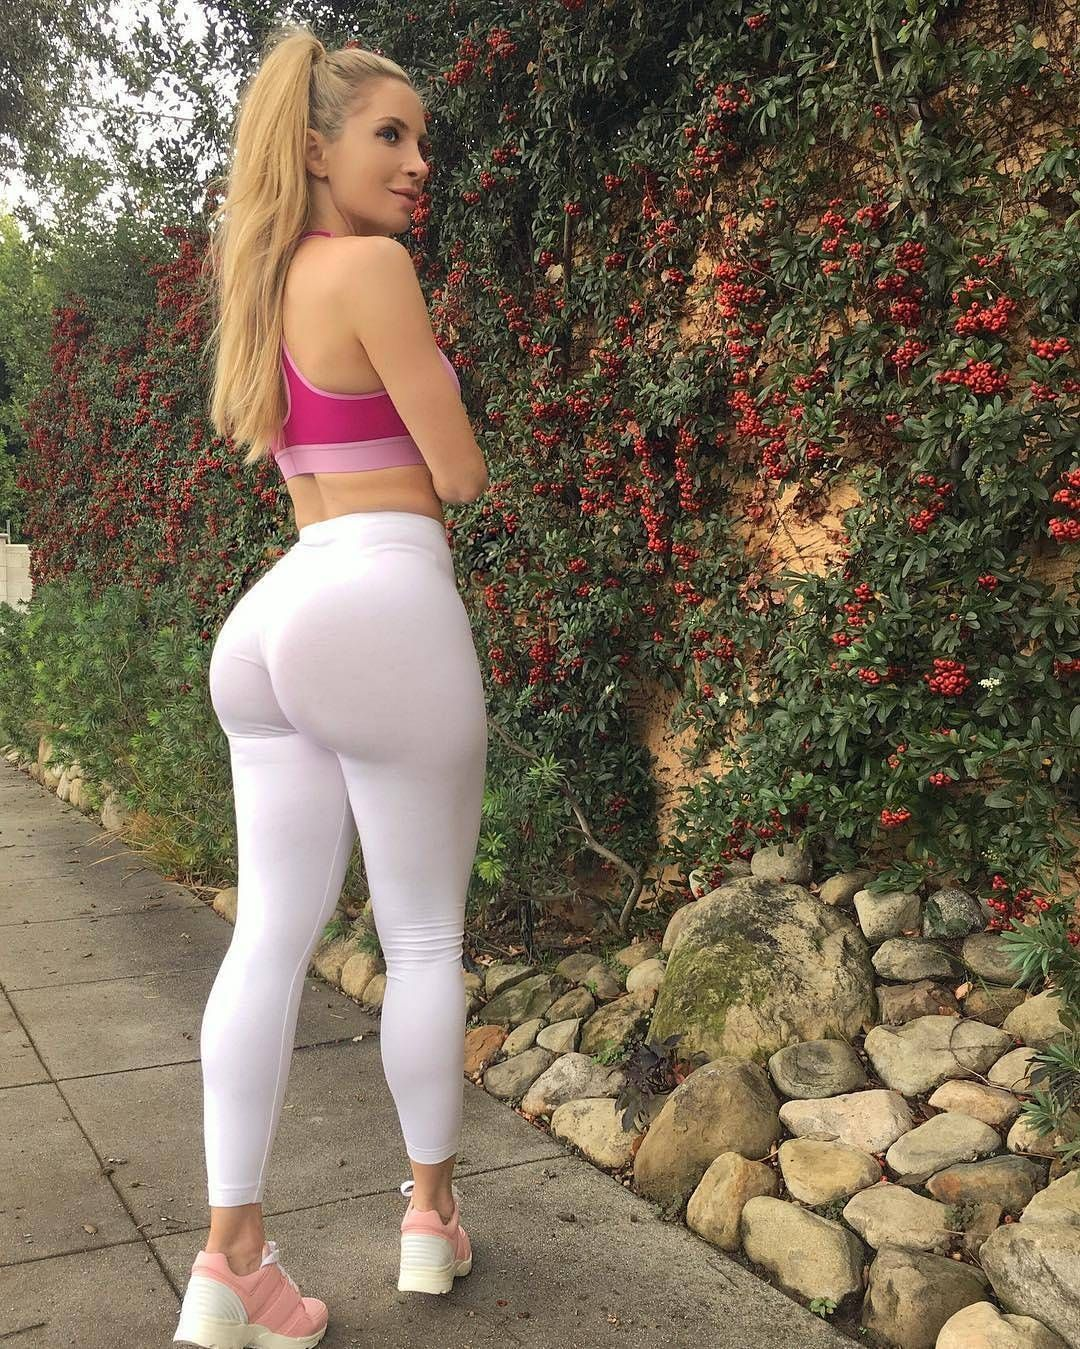 Girls In Yoga Pants With Camel Toe